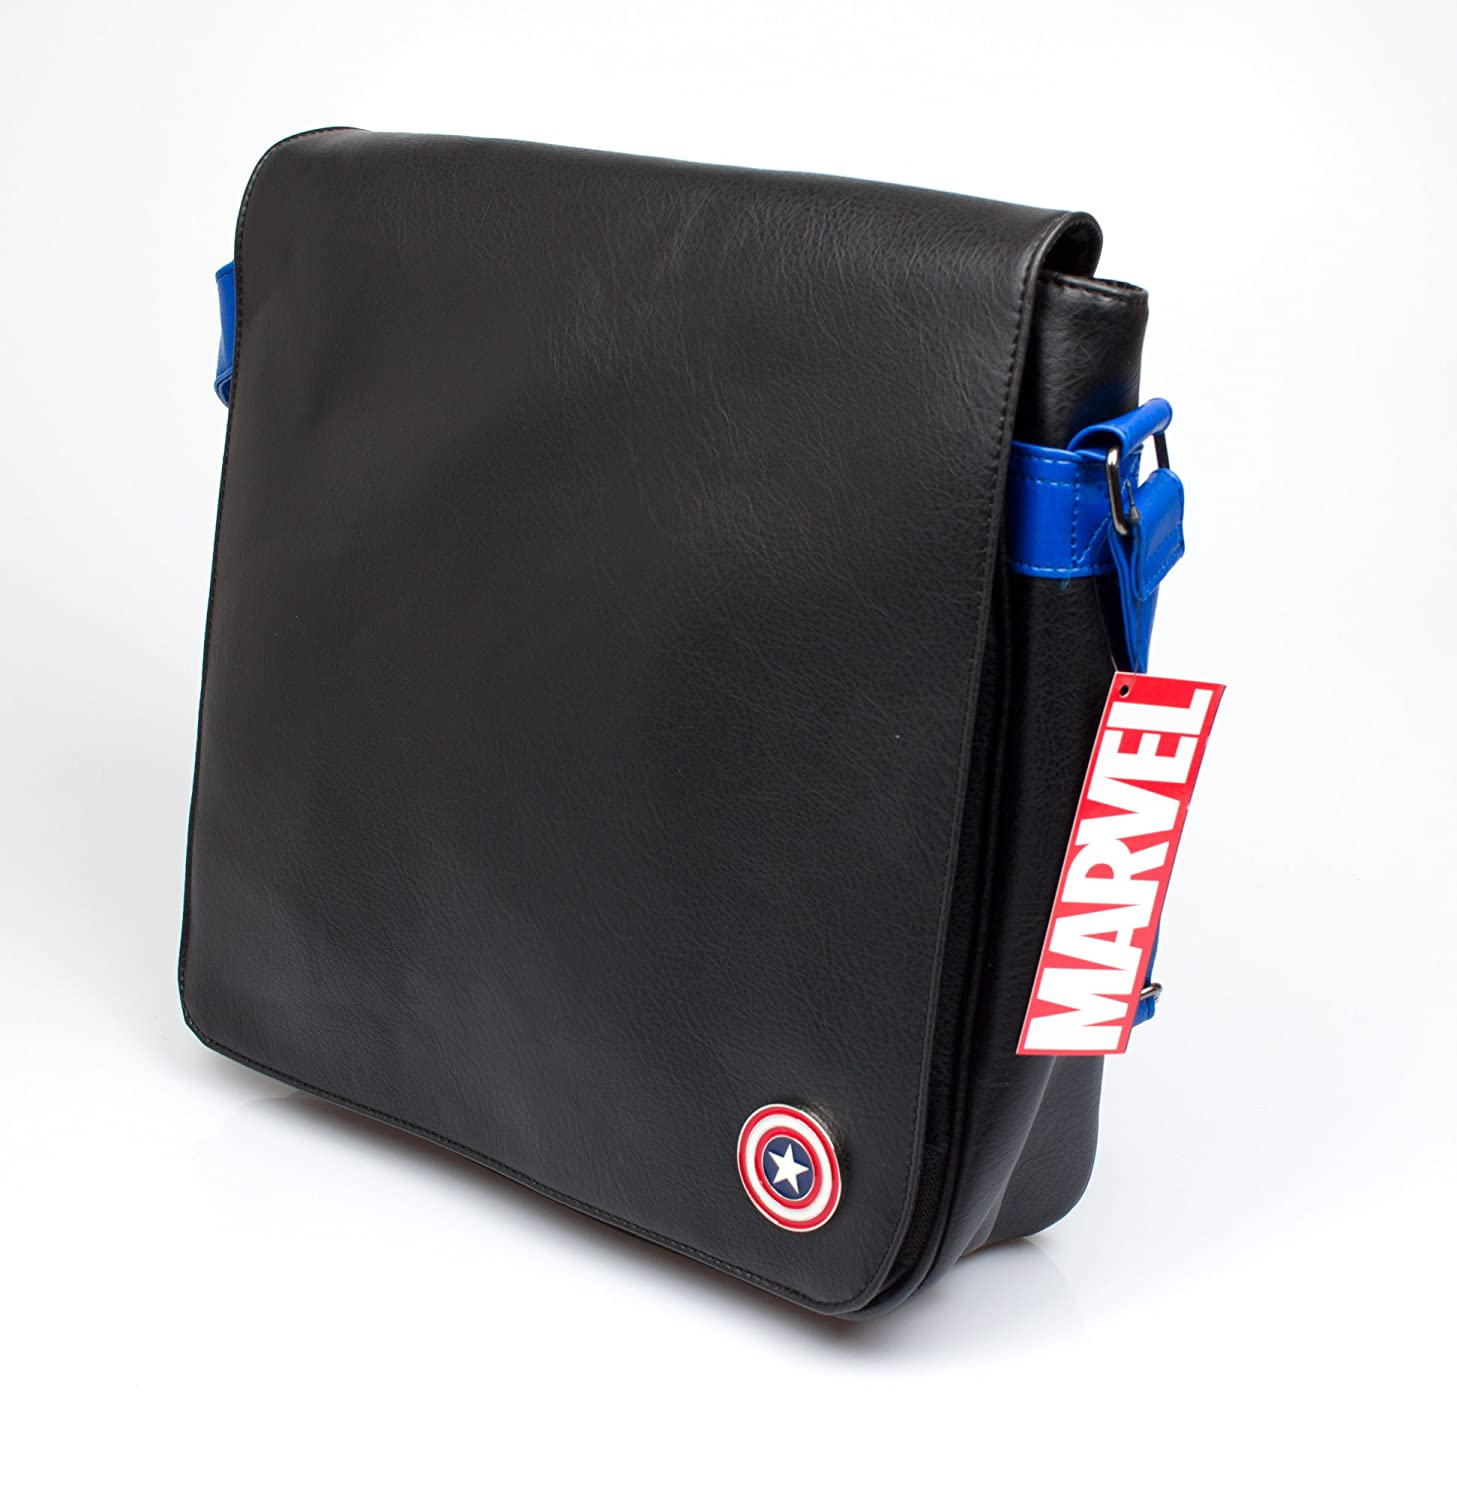 45 cm Alpa Marvel Captain America 12-Inch Vinyl Record Messenger Bag Black